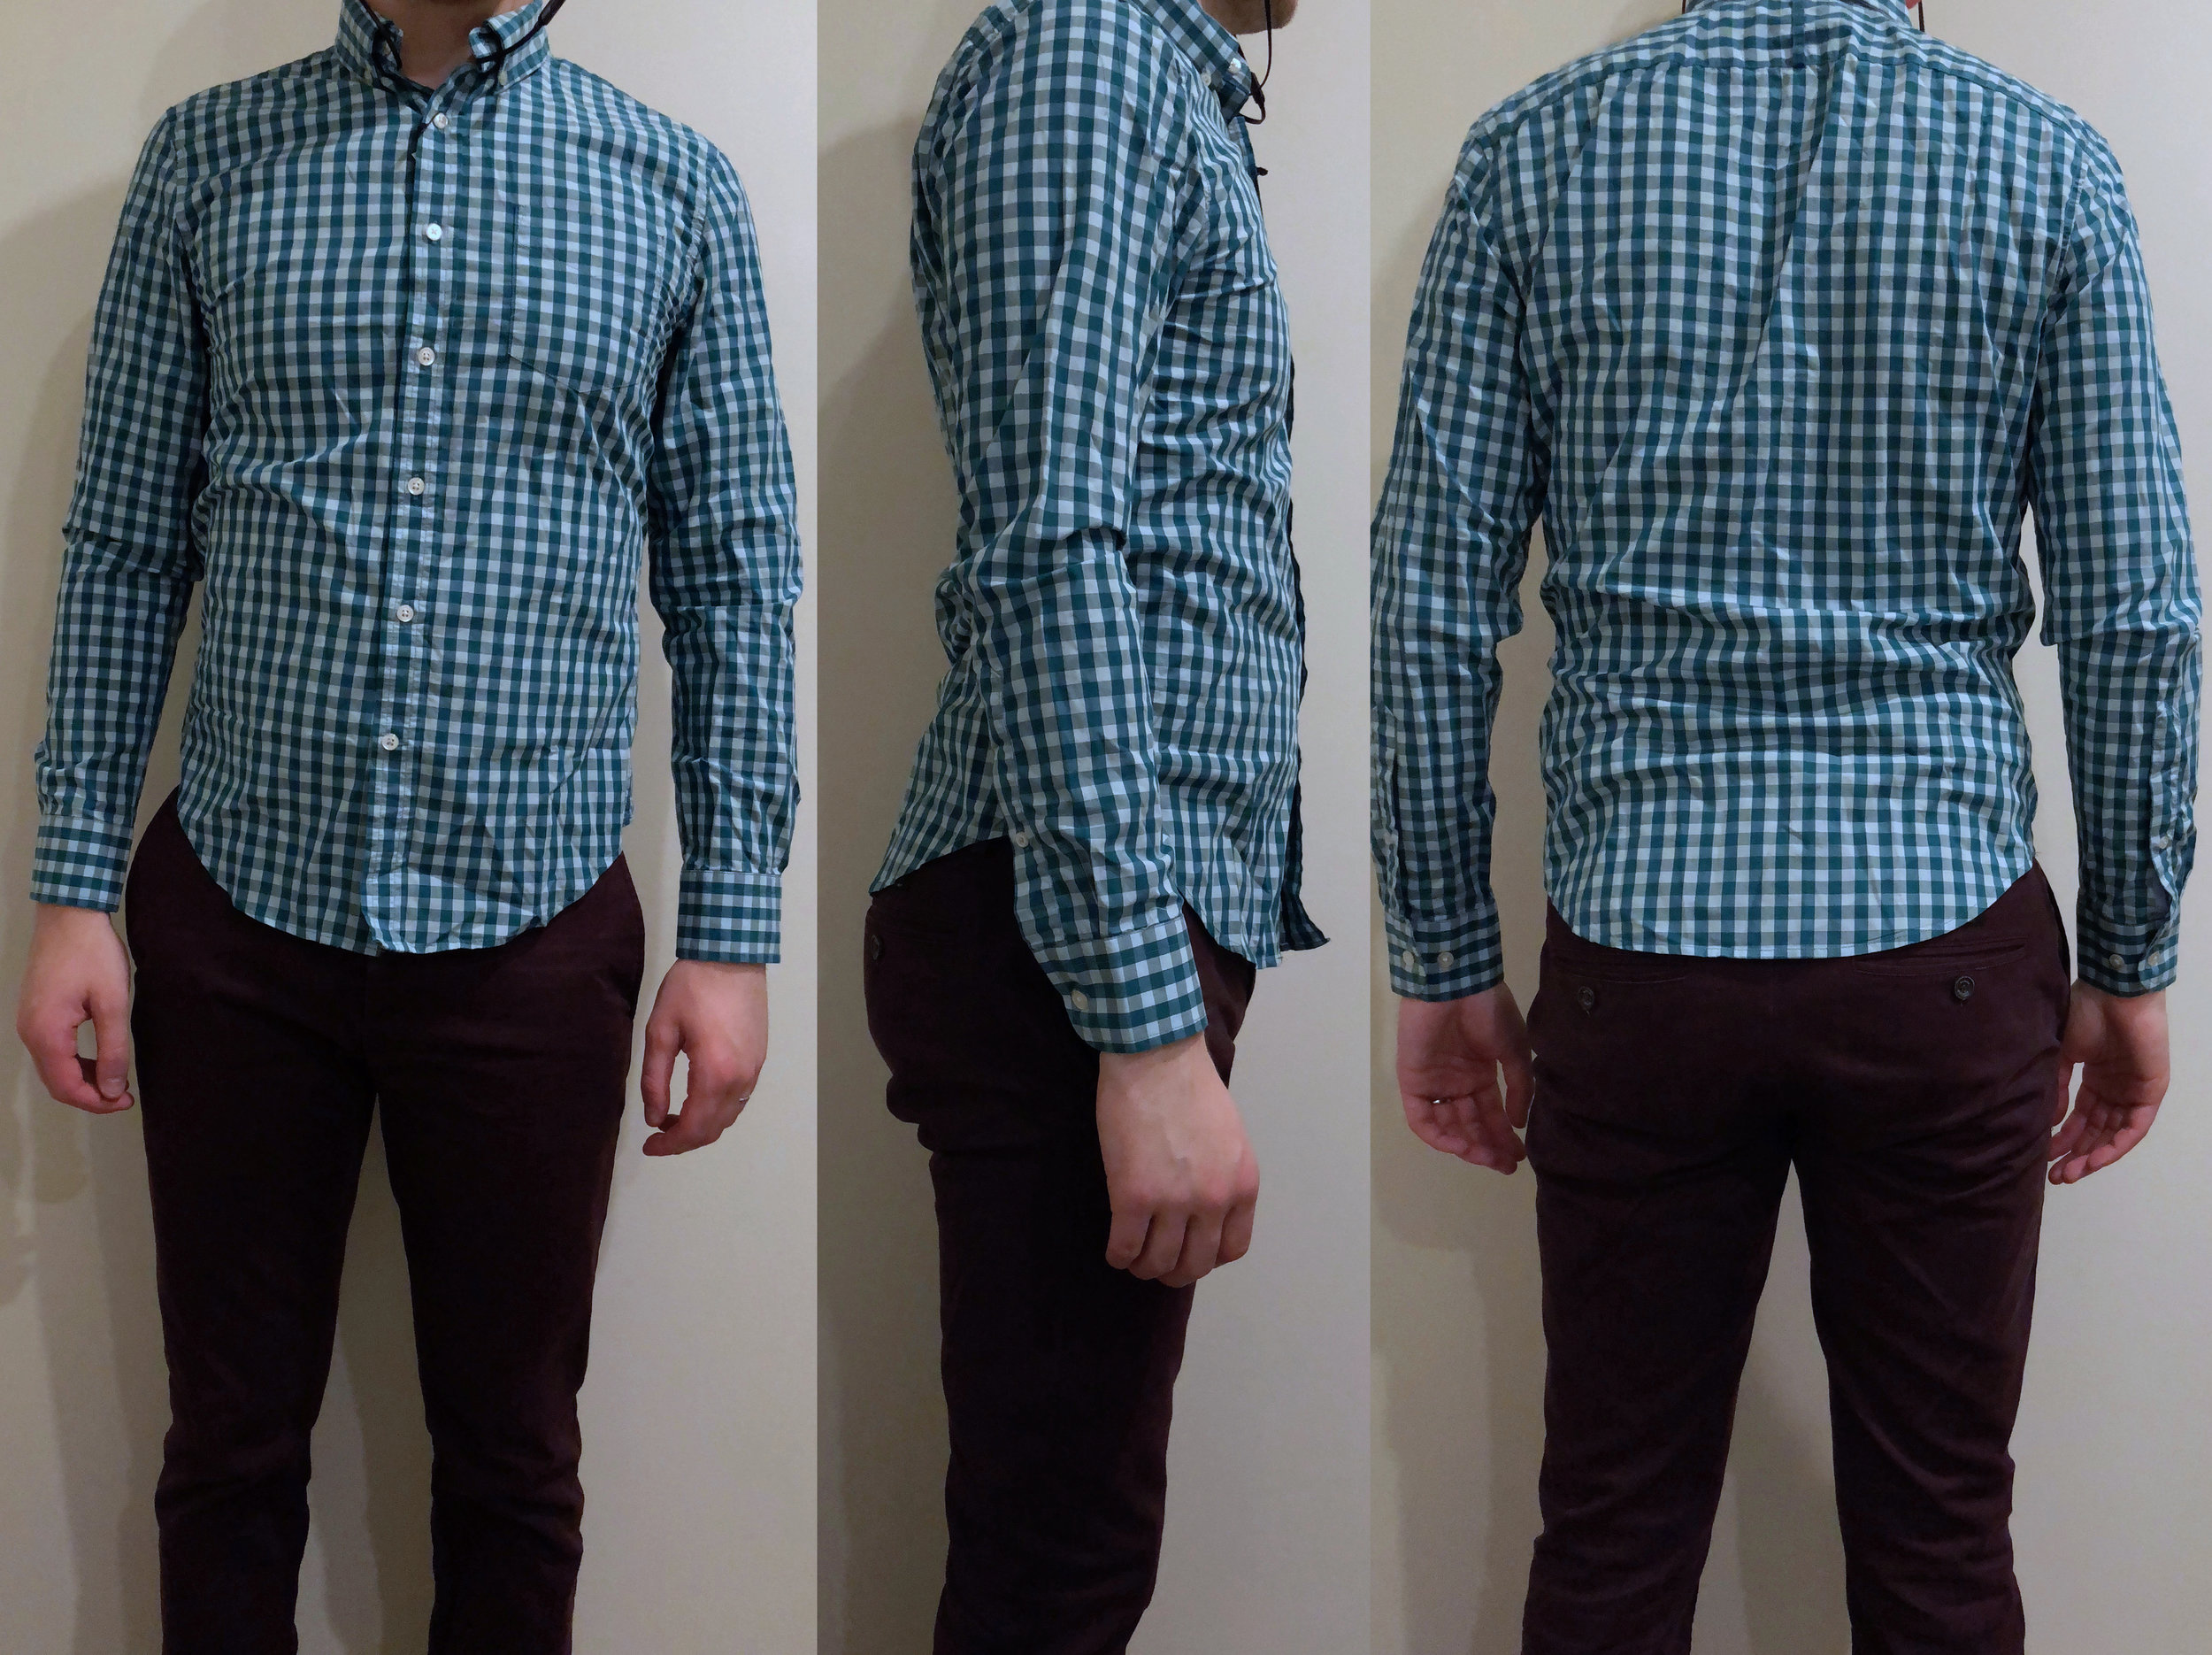 Gingham shirt — Way too small, short, and tight